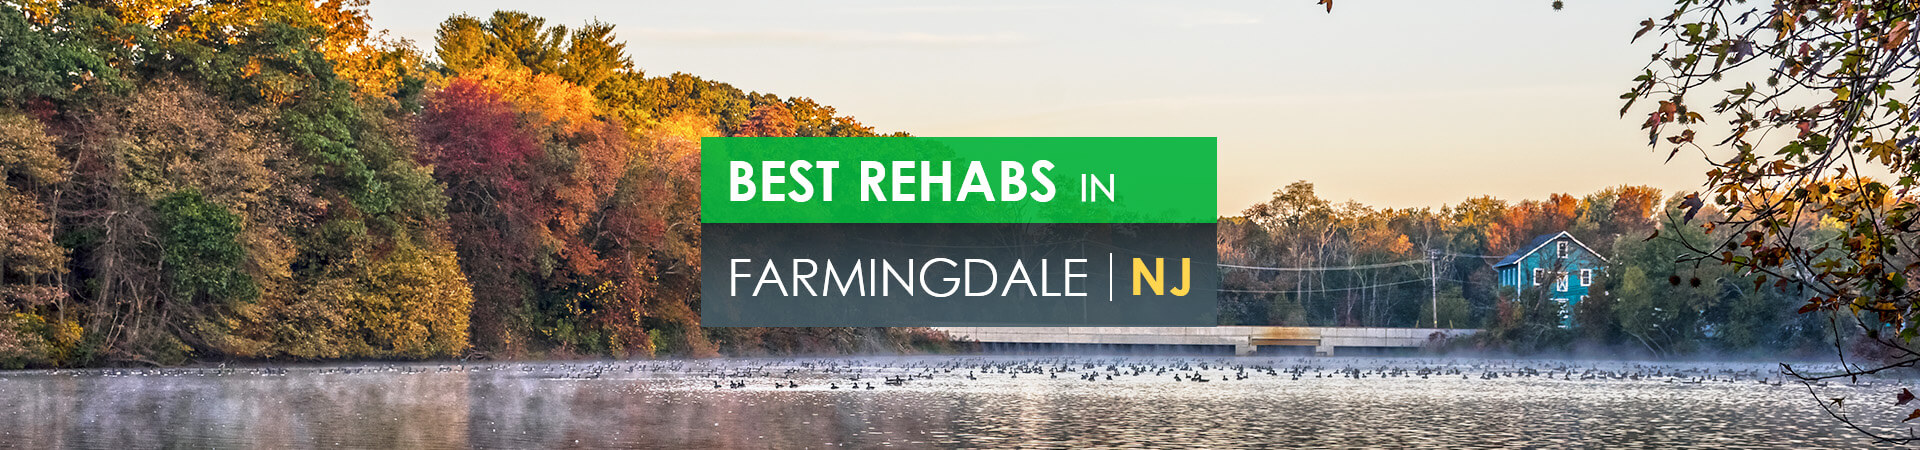 Best rehabs in Farmingdale, NJ